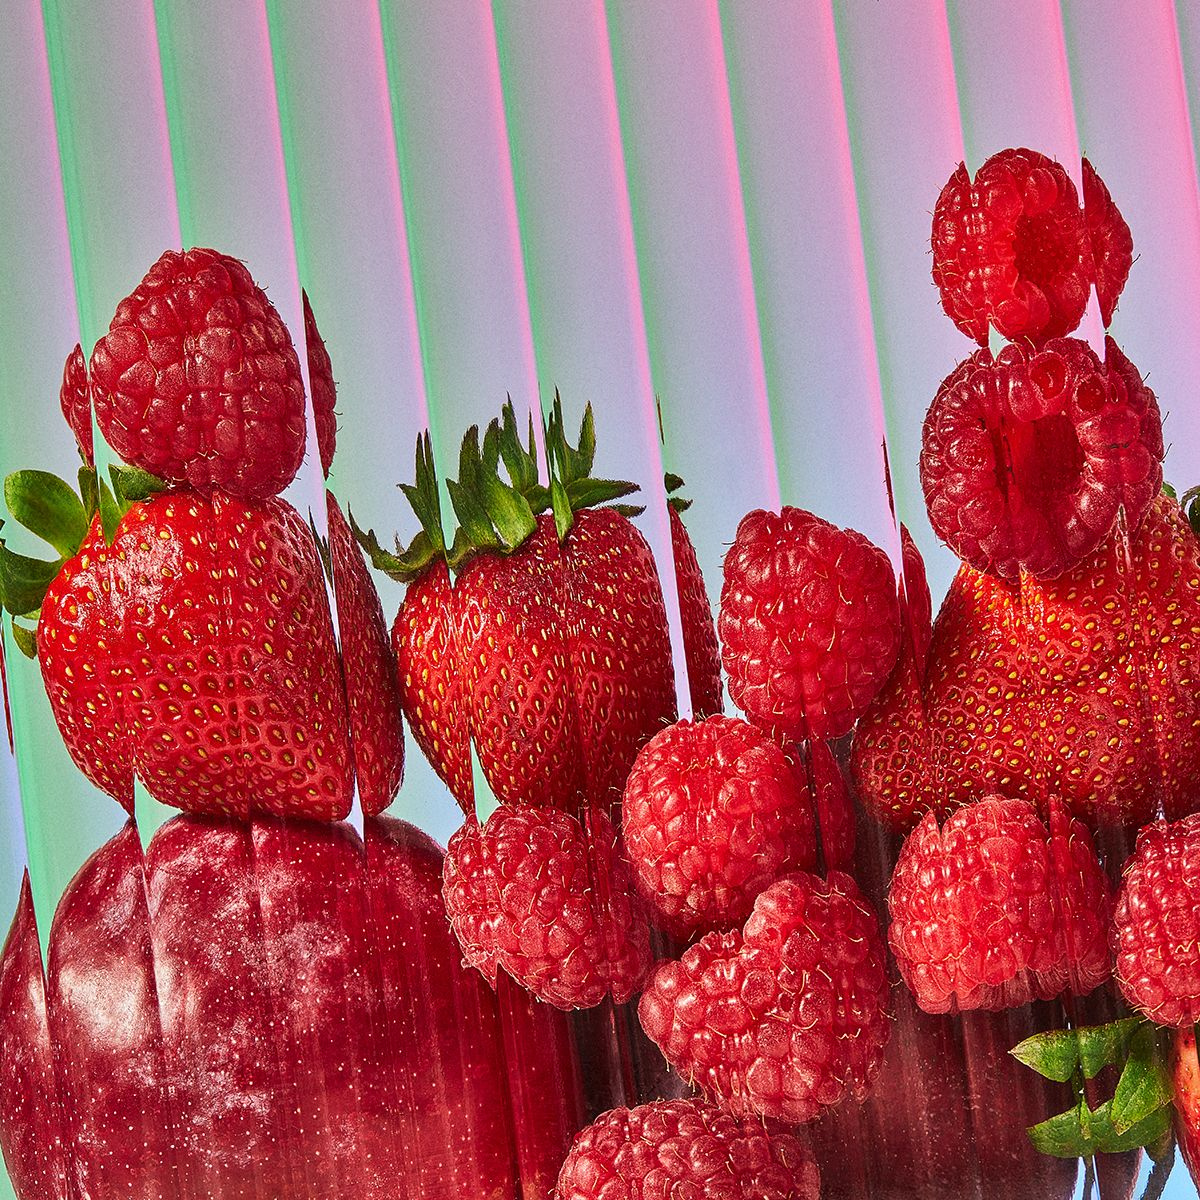 Red strawberries and raspberries stacked on top of each other photographed behind glass